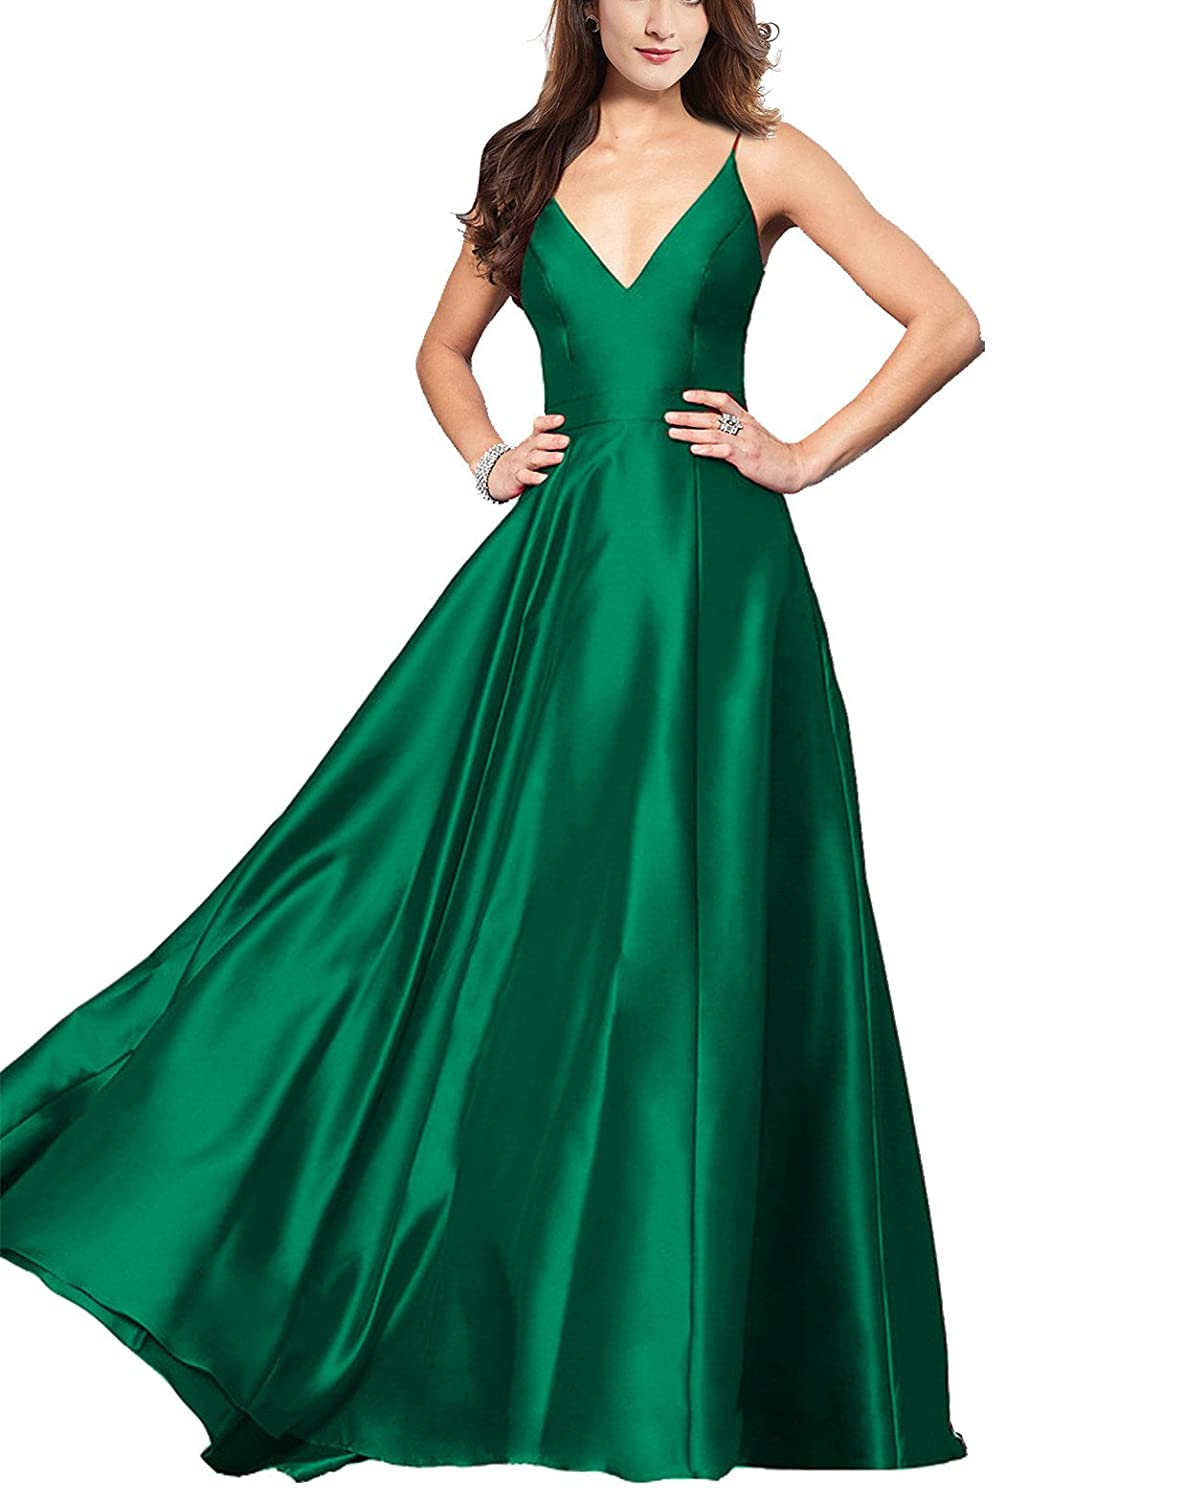 Lily Wedding Womens V,Neck Satin Prom Dresses 2019 Long Aline Sleeveless  Formal Evening Ball Gowns GD48 Size 16 Emerald Green